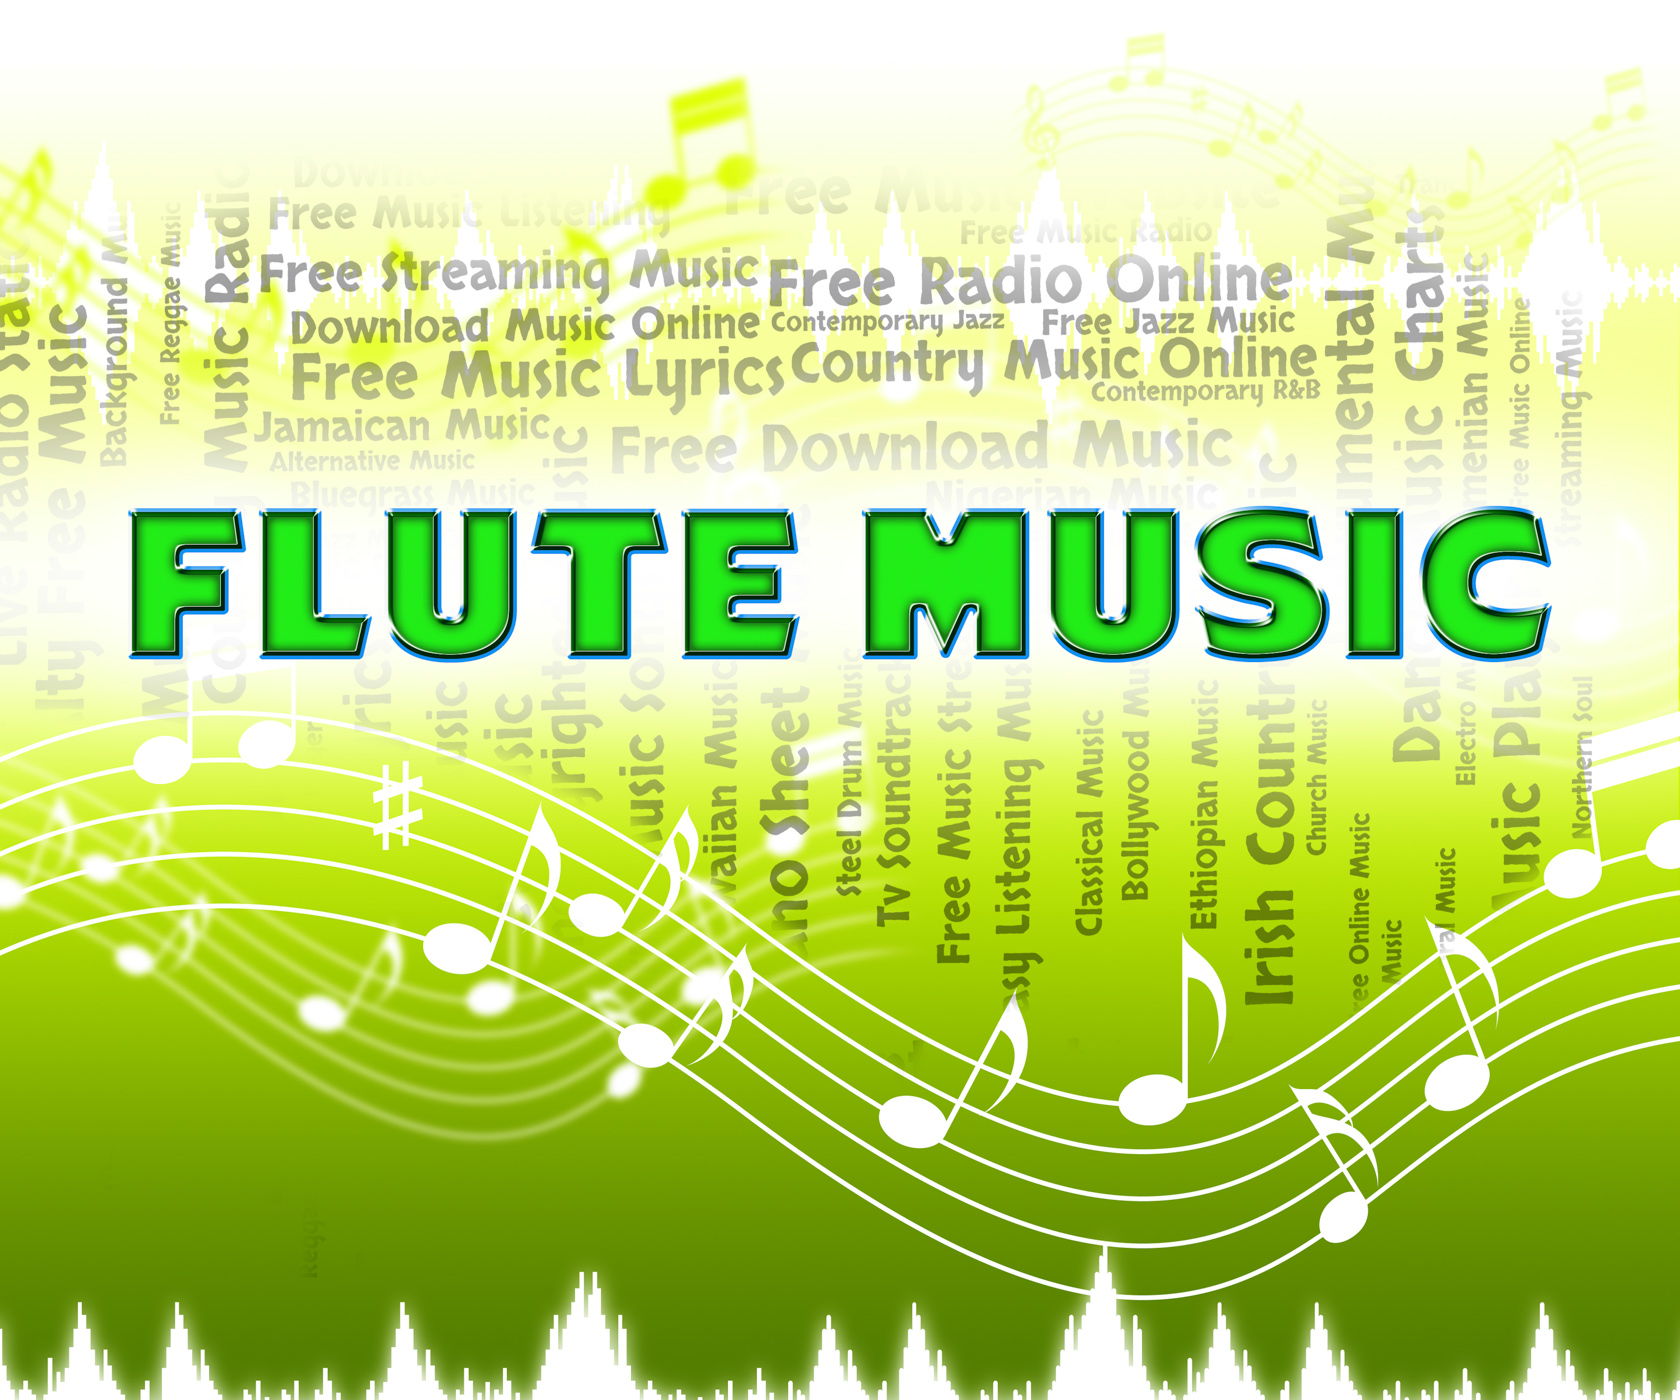 Flute music indicates sound track and flautists photo